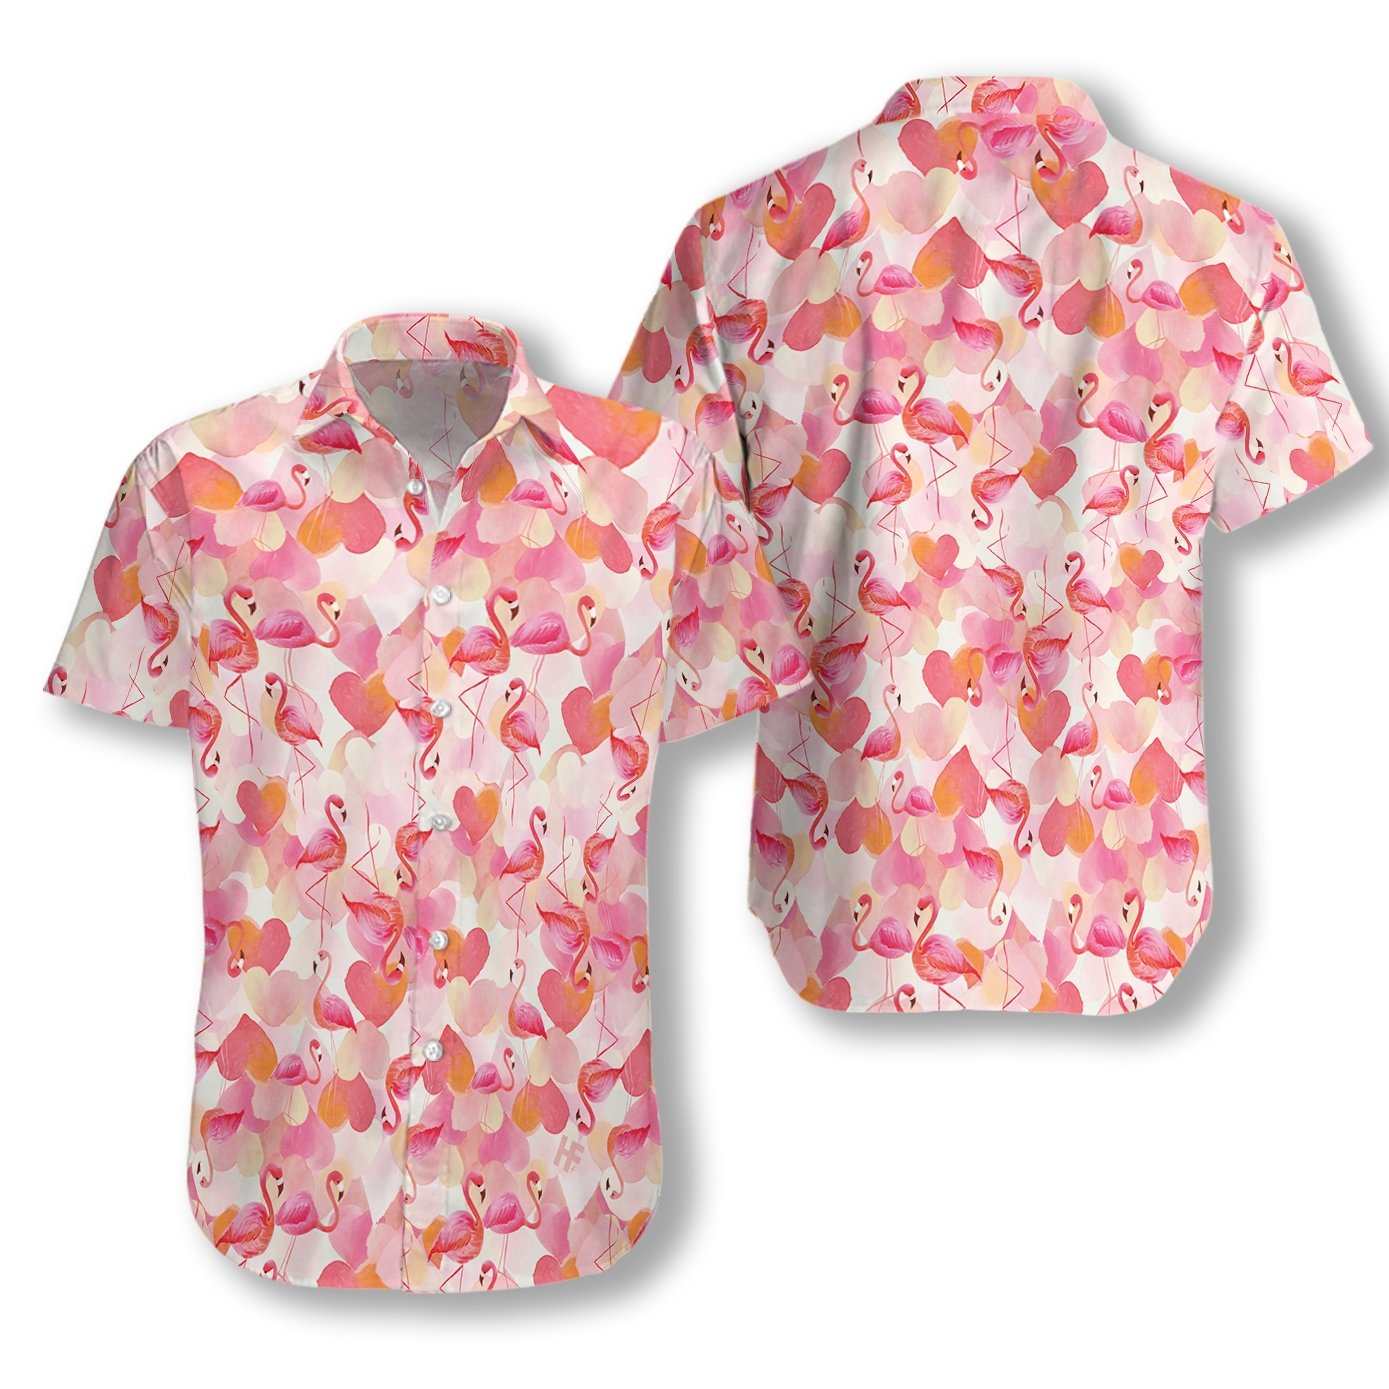 Flamingo 25 EZ23 2610 Hawaiian Shirt